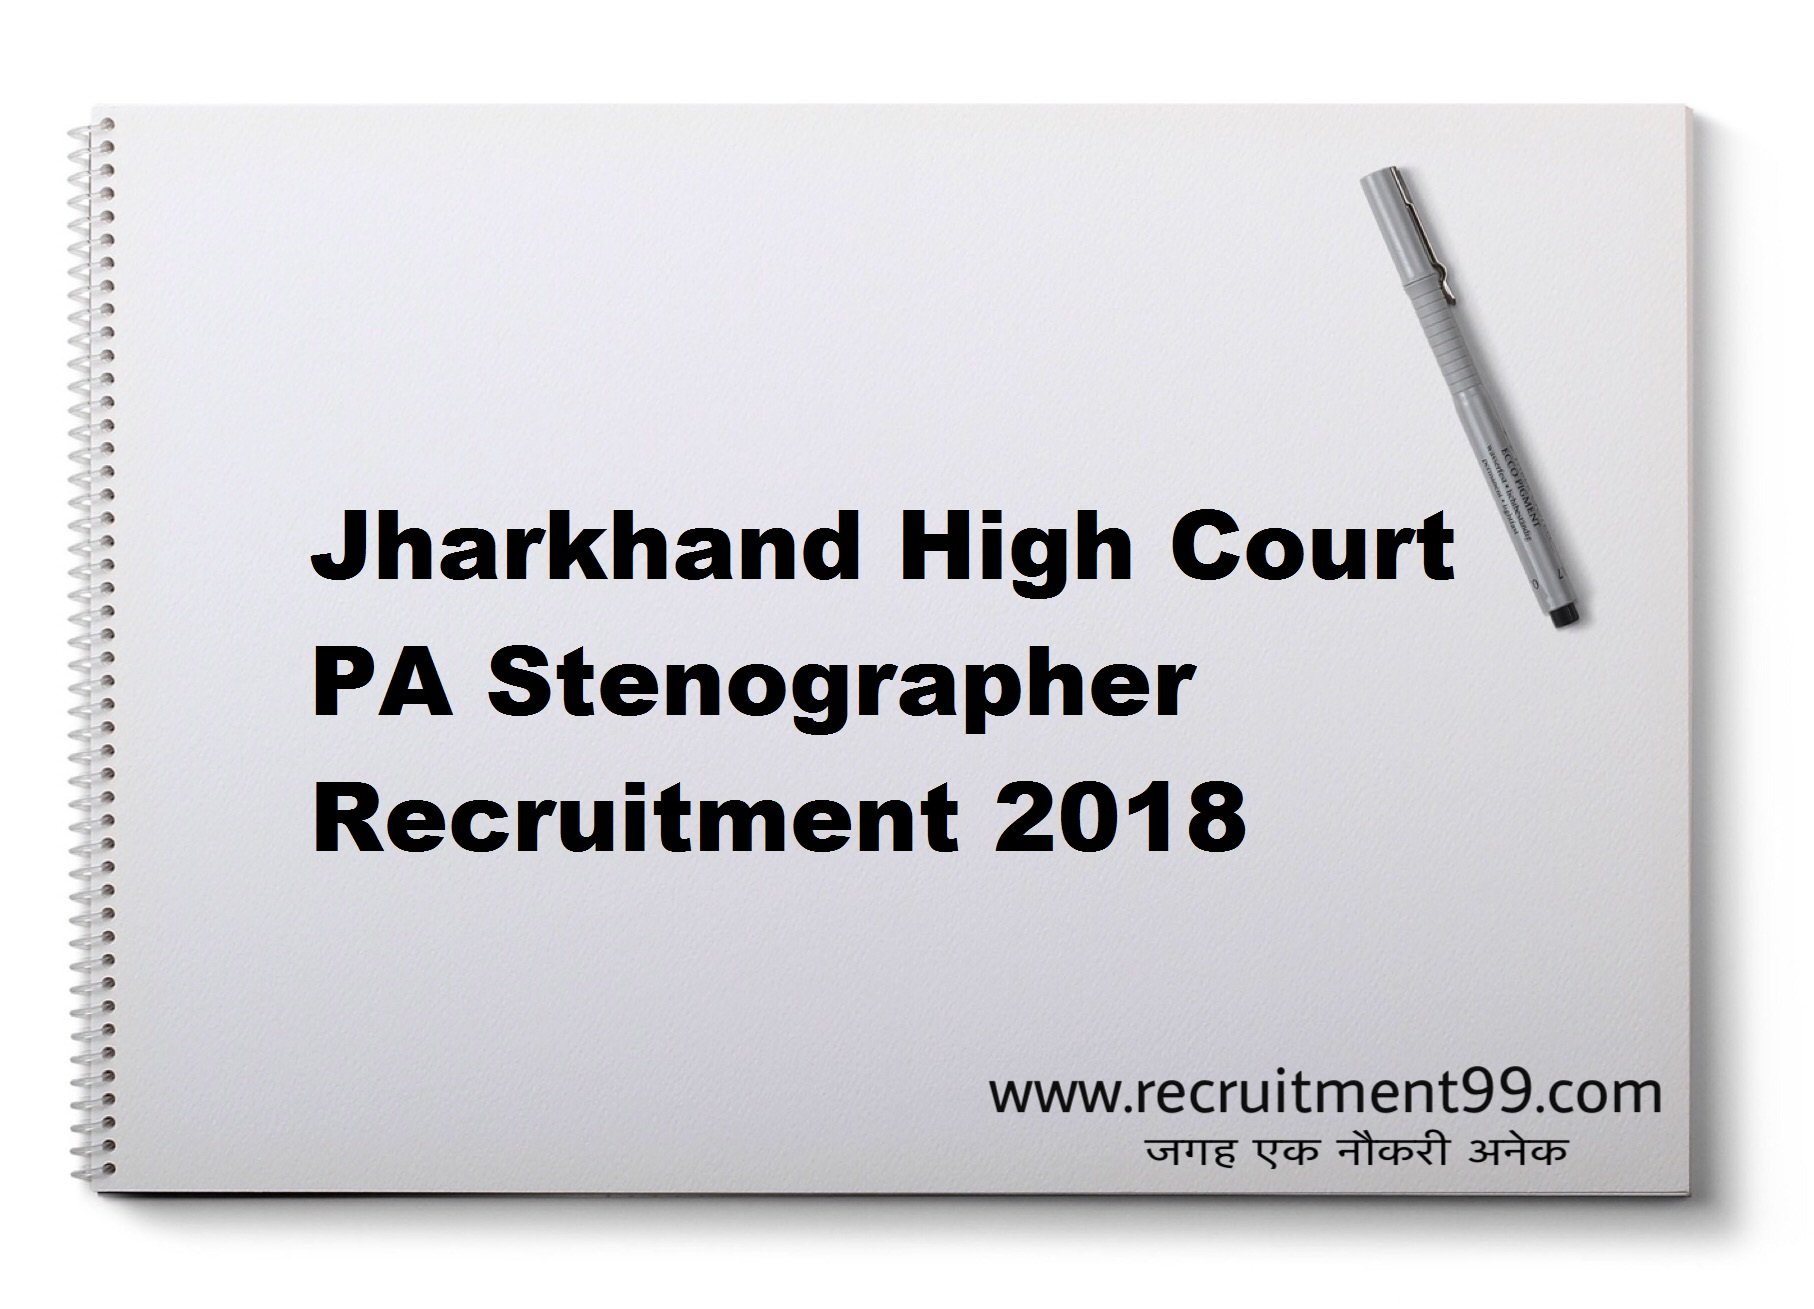 Jharkhand High Court PA stenographer Recruitment Admit Card Result 2018